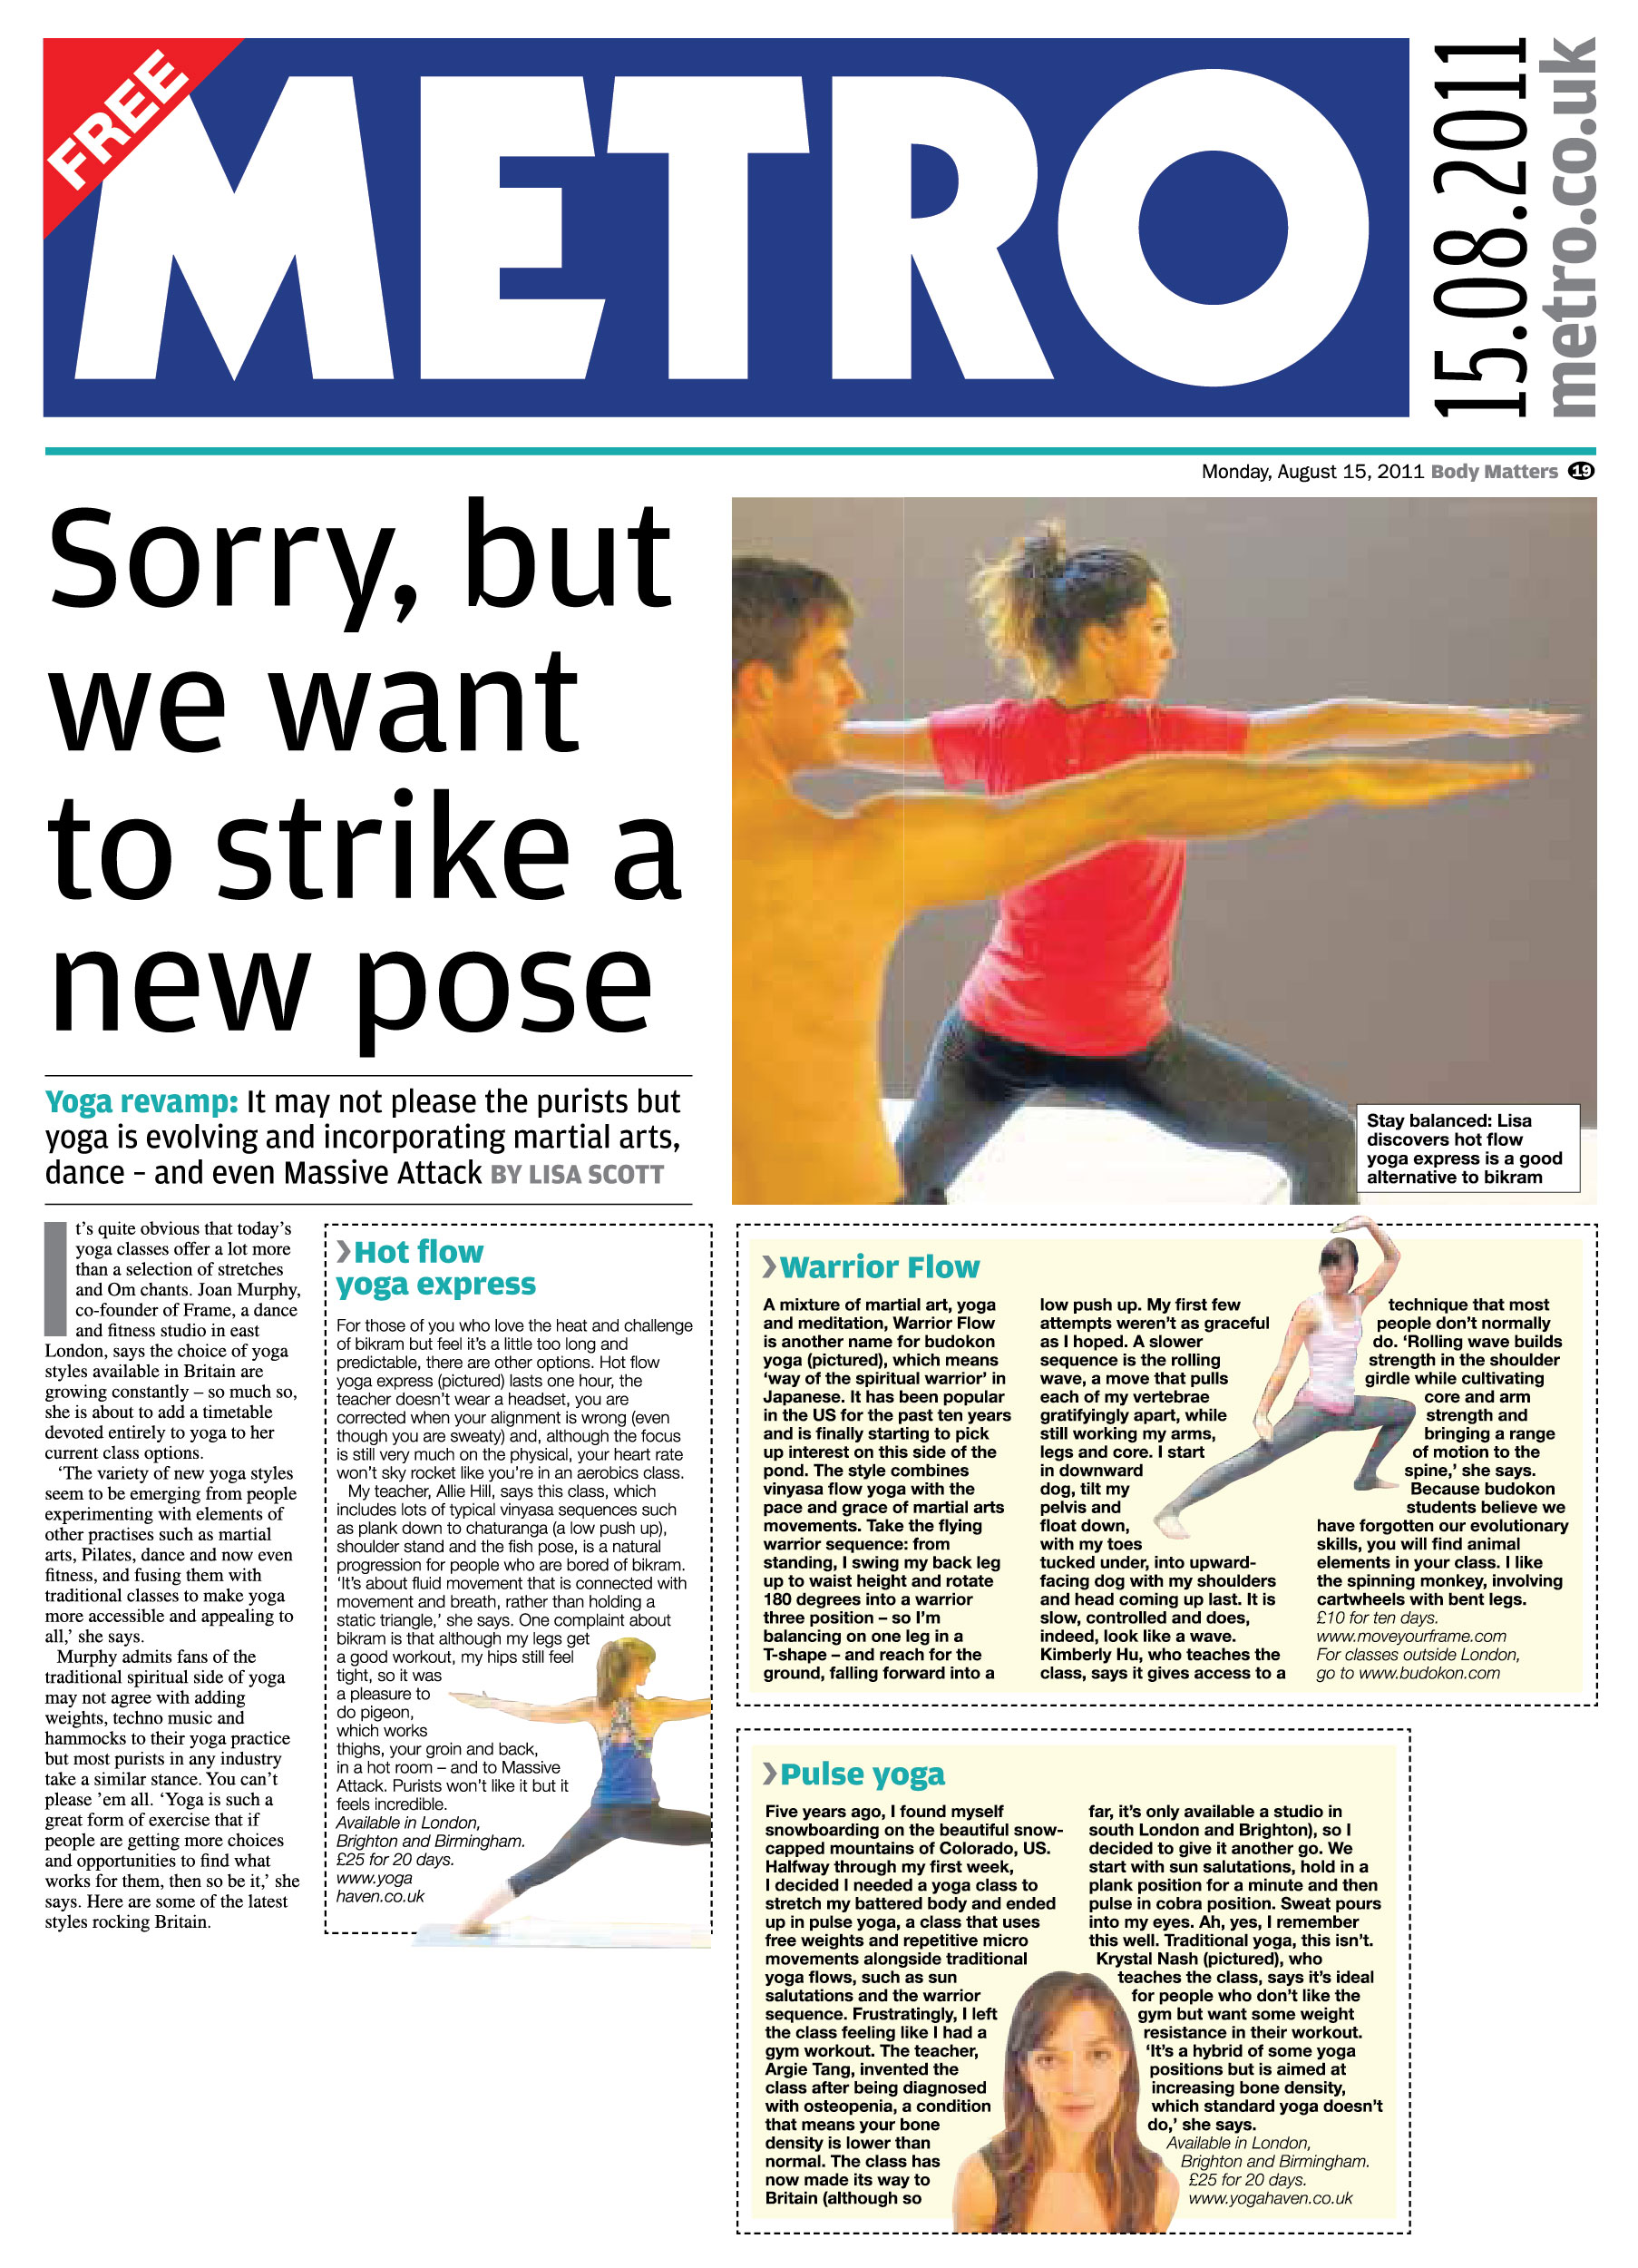 Warrior Flow Class at Frame featured in  Metro  (15 August 2011)